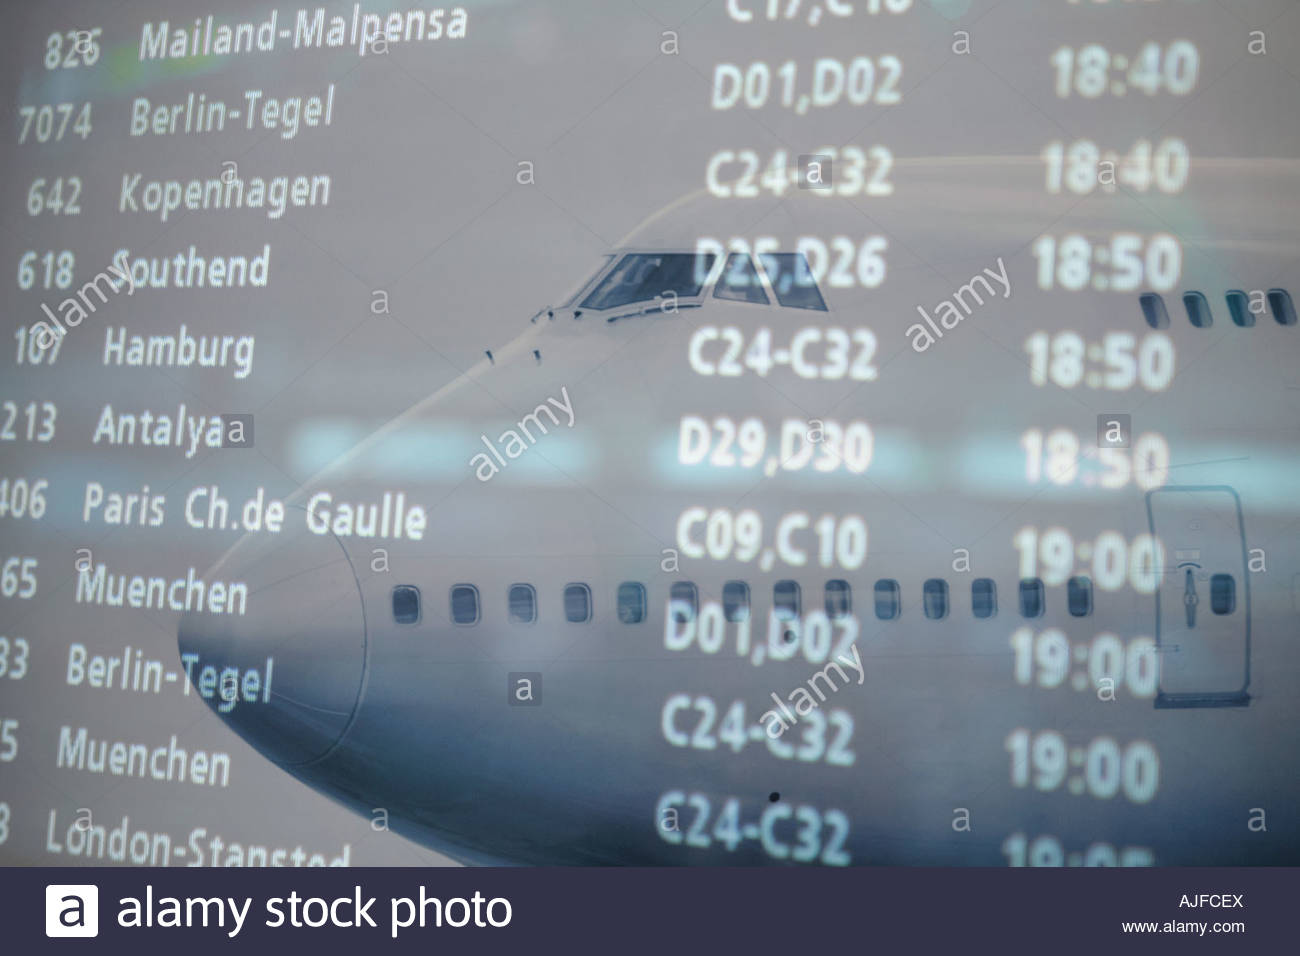 Airplane and departure board - Stock Image